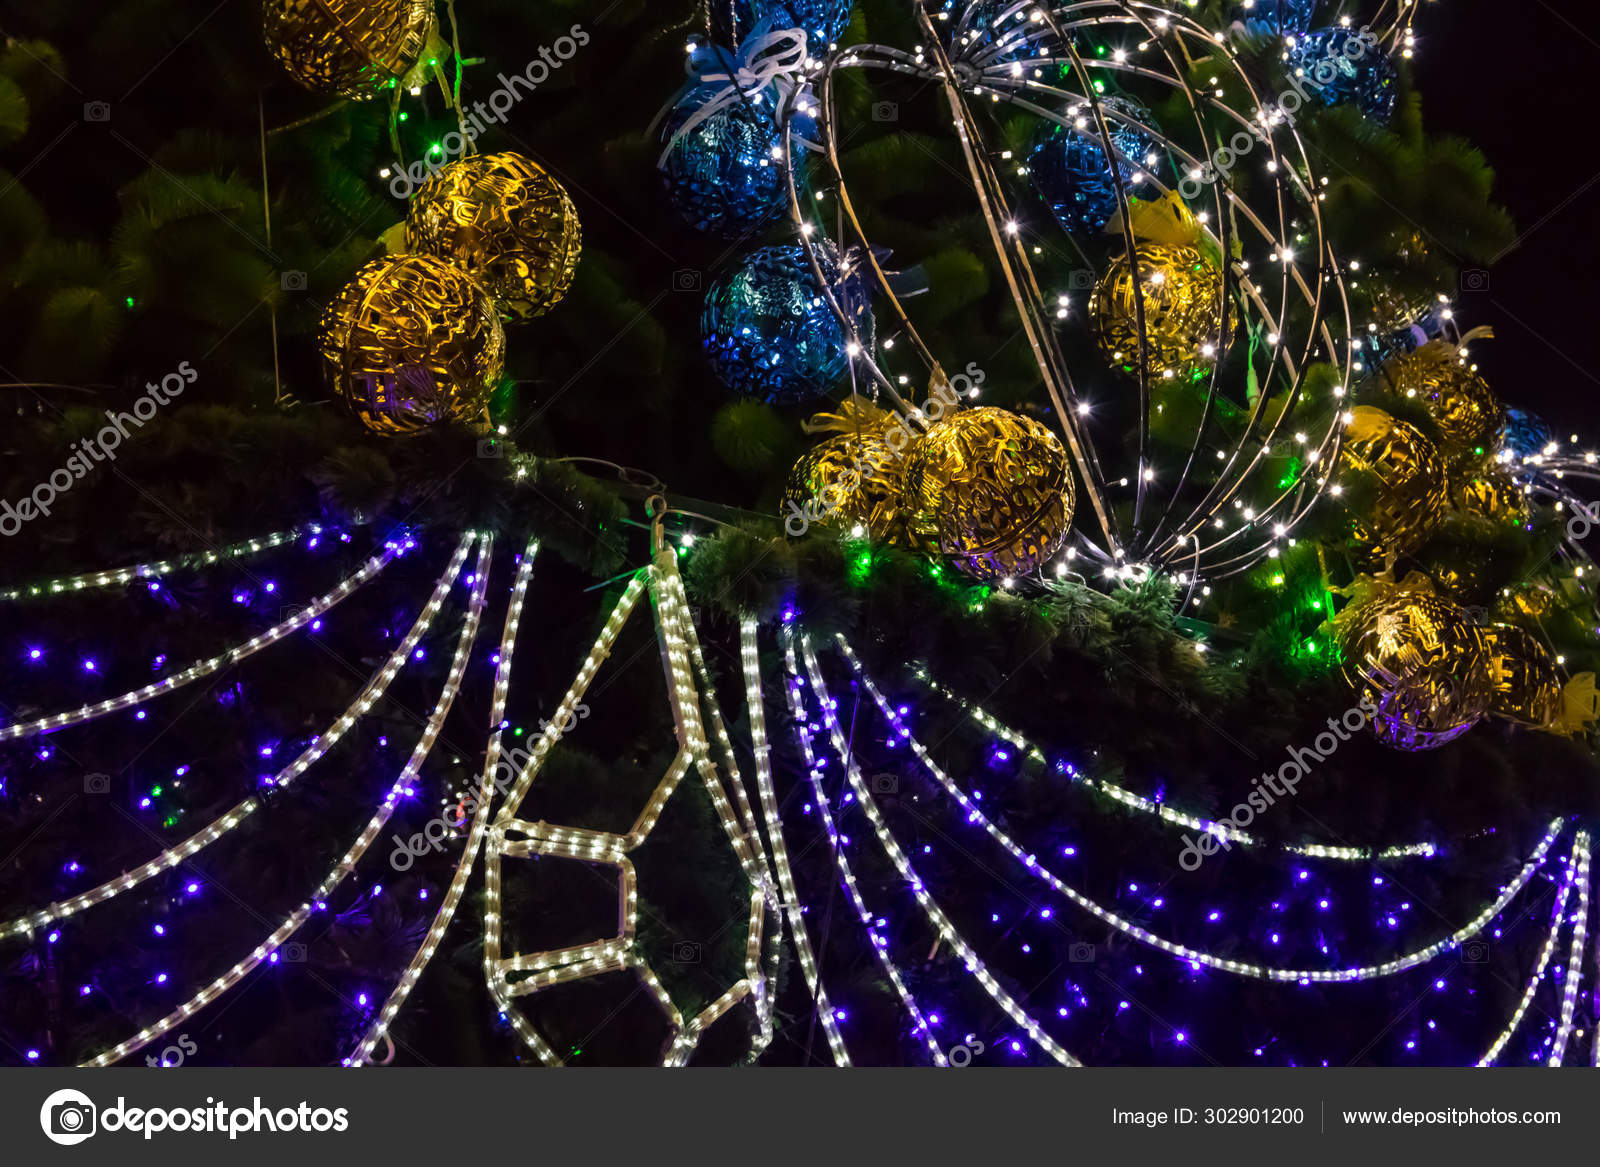 Decorated Christmas Tree With Multi Colored Lights At Night Stock Photo C Olyasolodenko 302901200